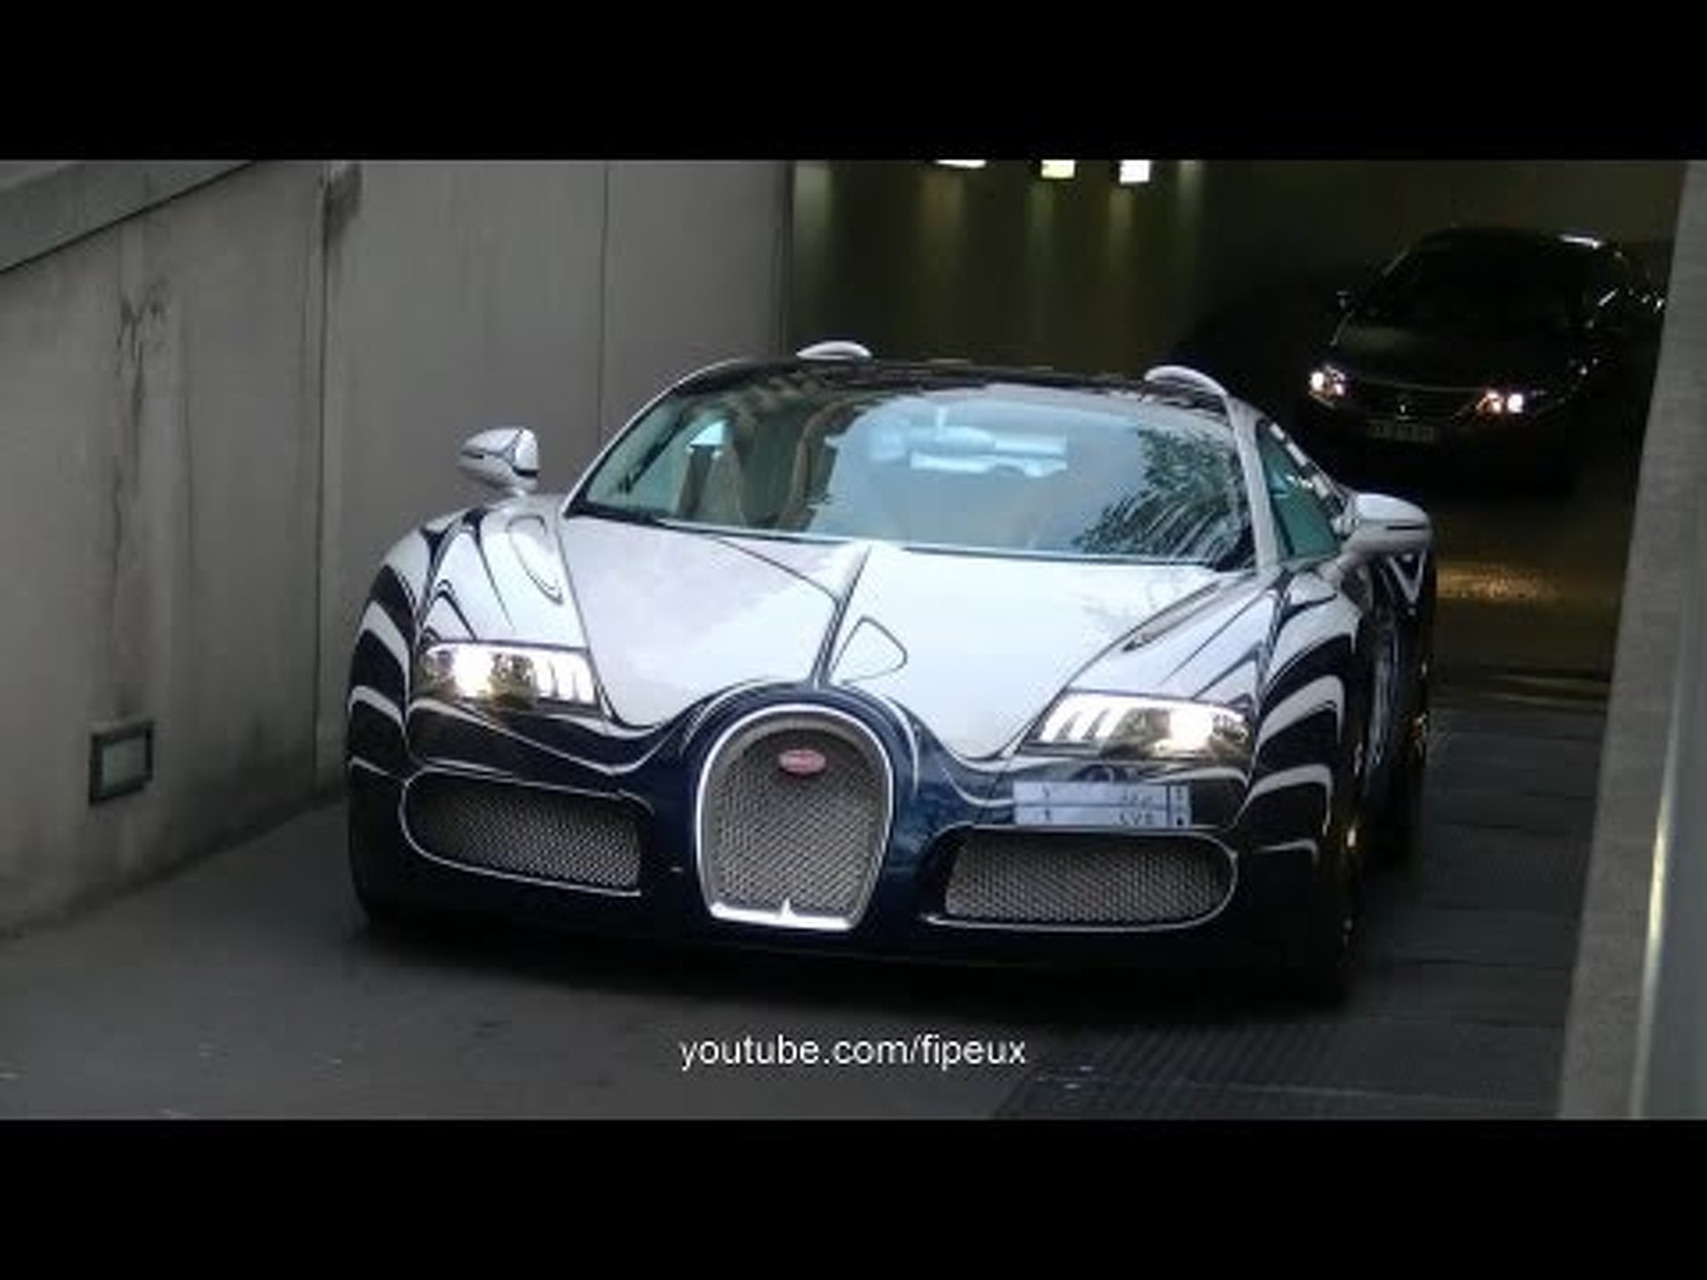 Bugatti Veyron L'Or Blanc in the street of Paris !